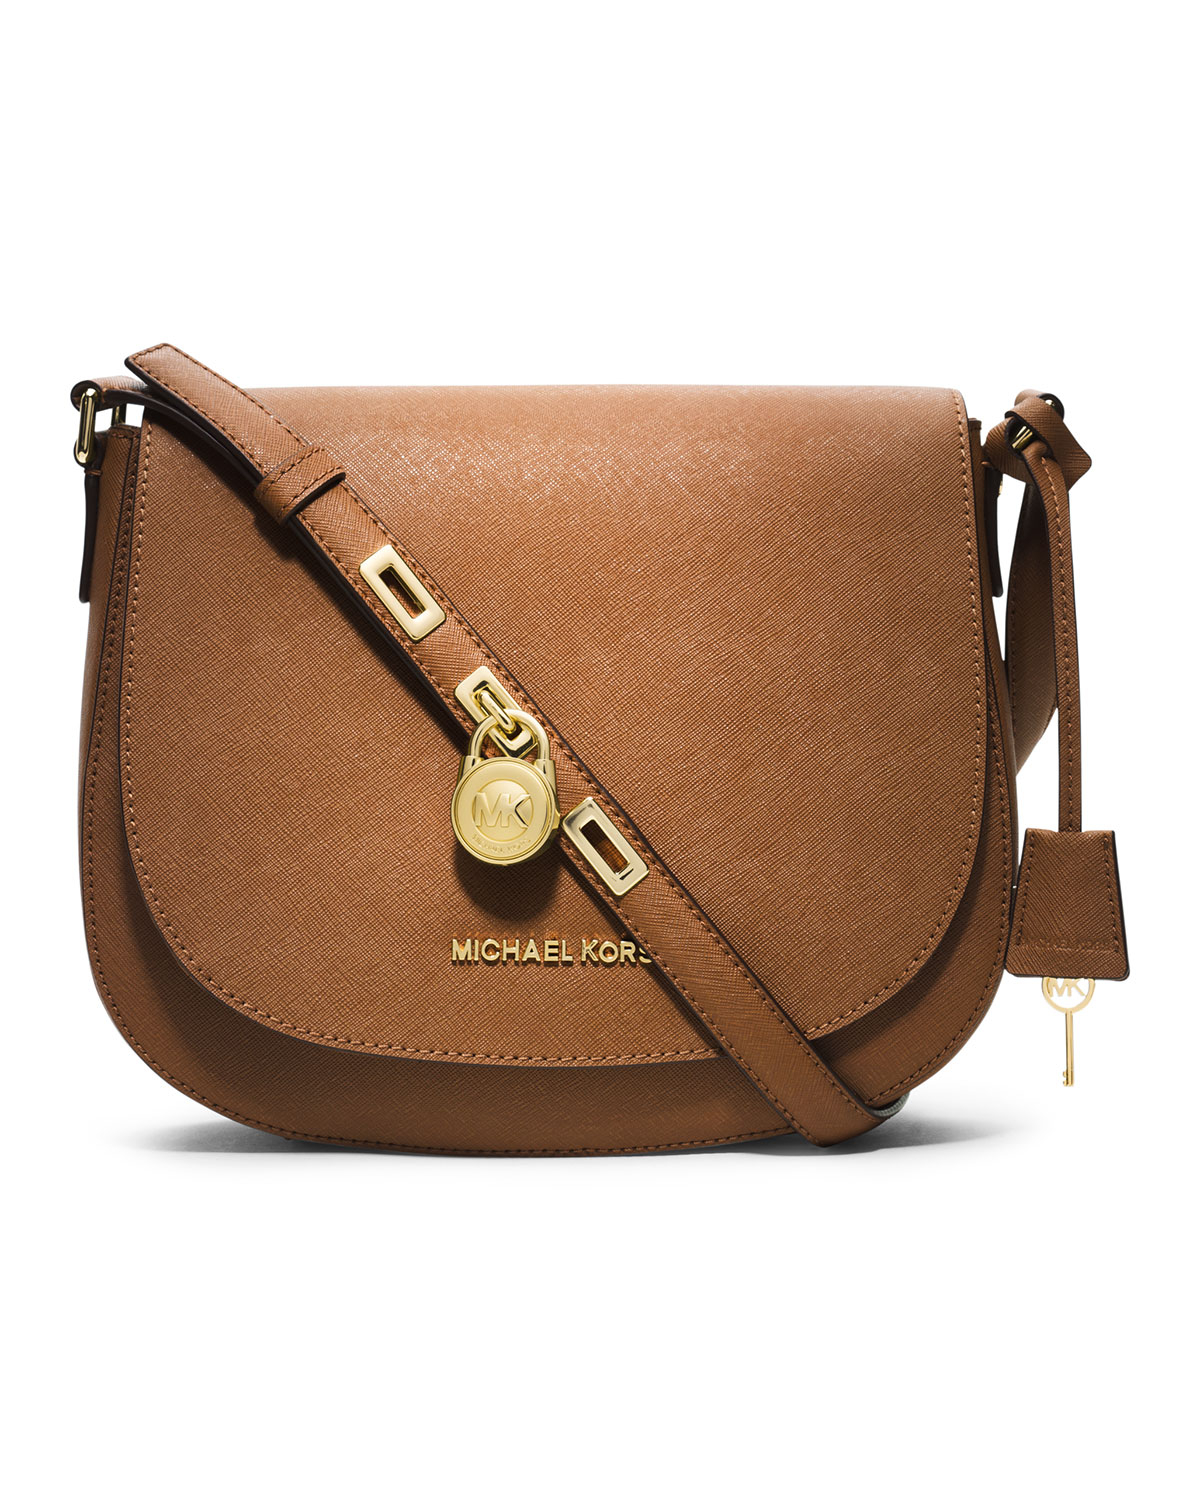 Lyst - MICHAEL Michael Kors Large Hamilton Messenger in Brown e8643af9f1f